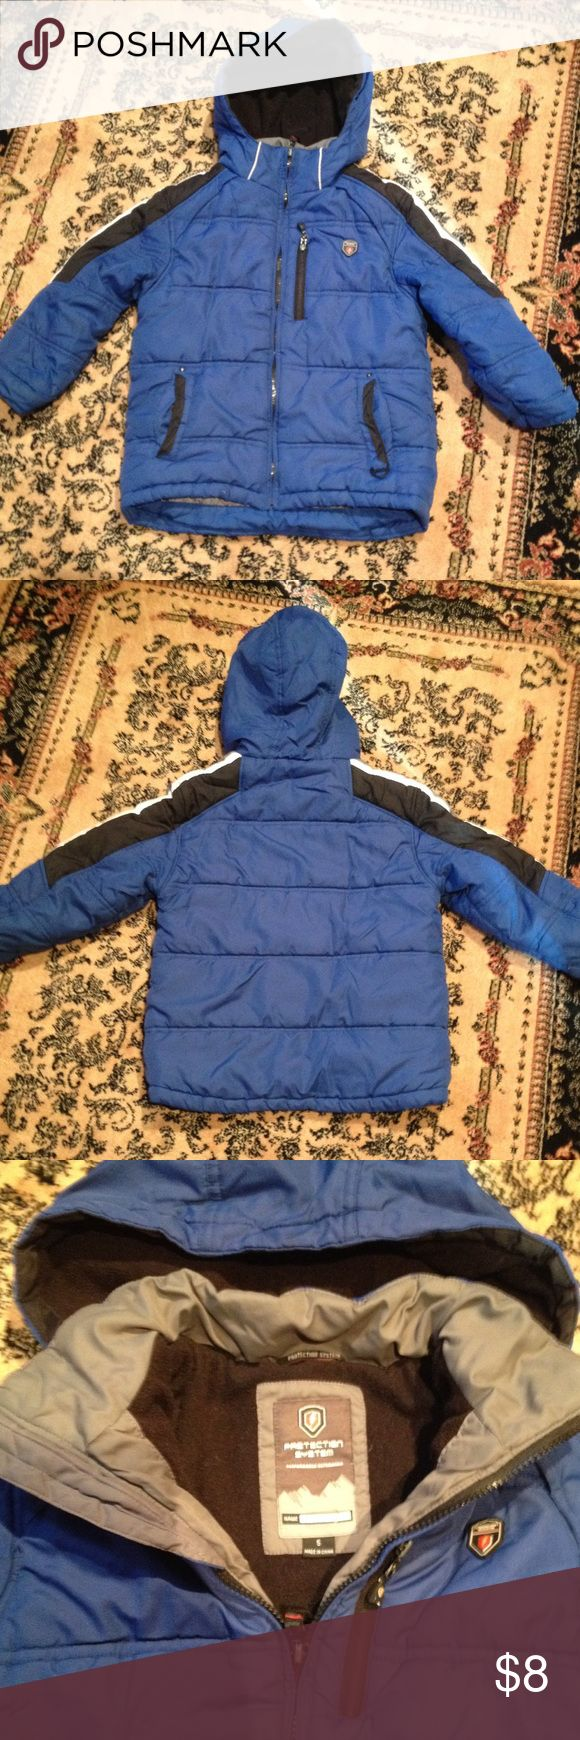 Boys  winter warm blue jacket/ coat, size 5 Boys winter coat size 5 . Cozy lining inside , warm . In good used condition, has visible signs of wear, zippers work. Price for quick sale. Protection System Performance outwear Jackets & Coats